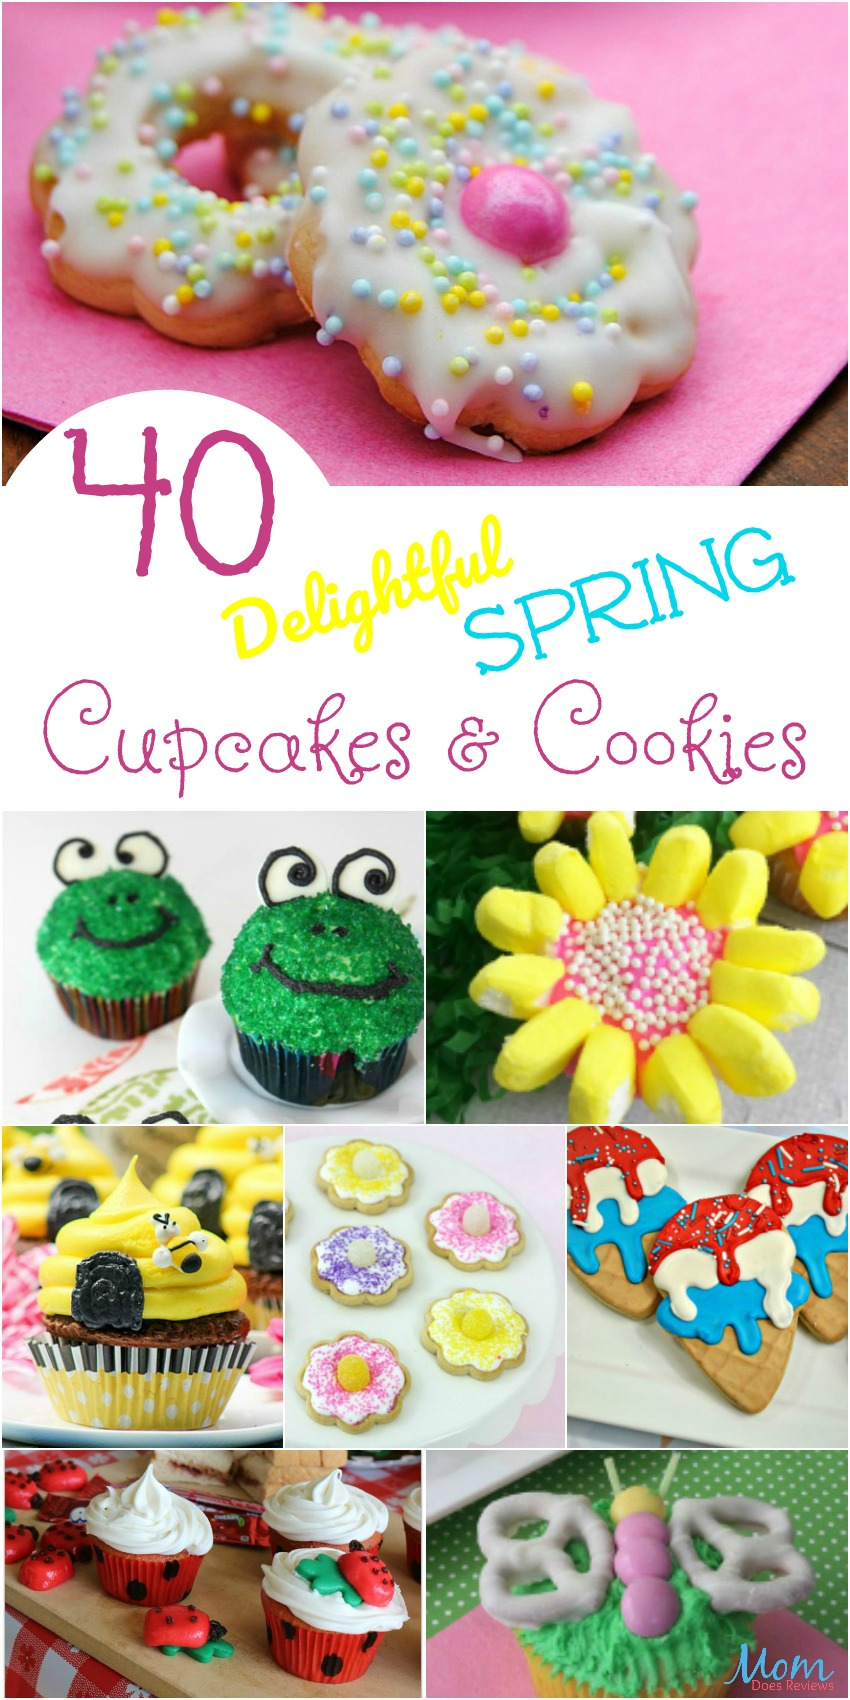 40 Delightful Spring Cupcakes & Cookies that Will Make You Smile #SpringfunonMDR #cookies #cupackes #outrageouscupcakes #desserts #recipes